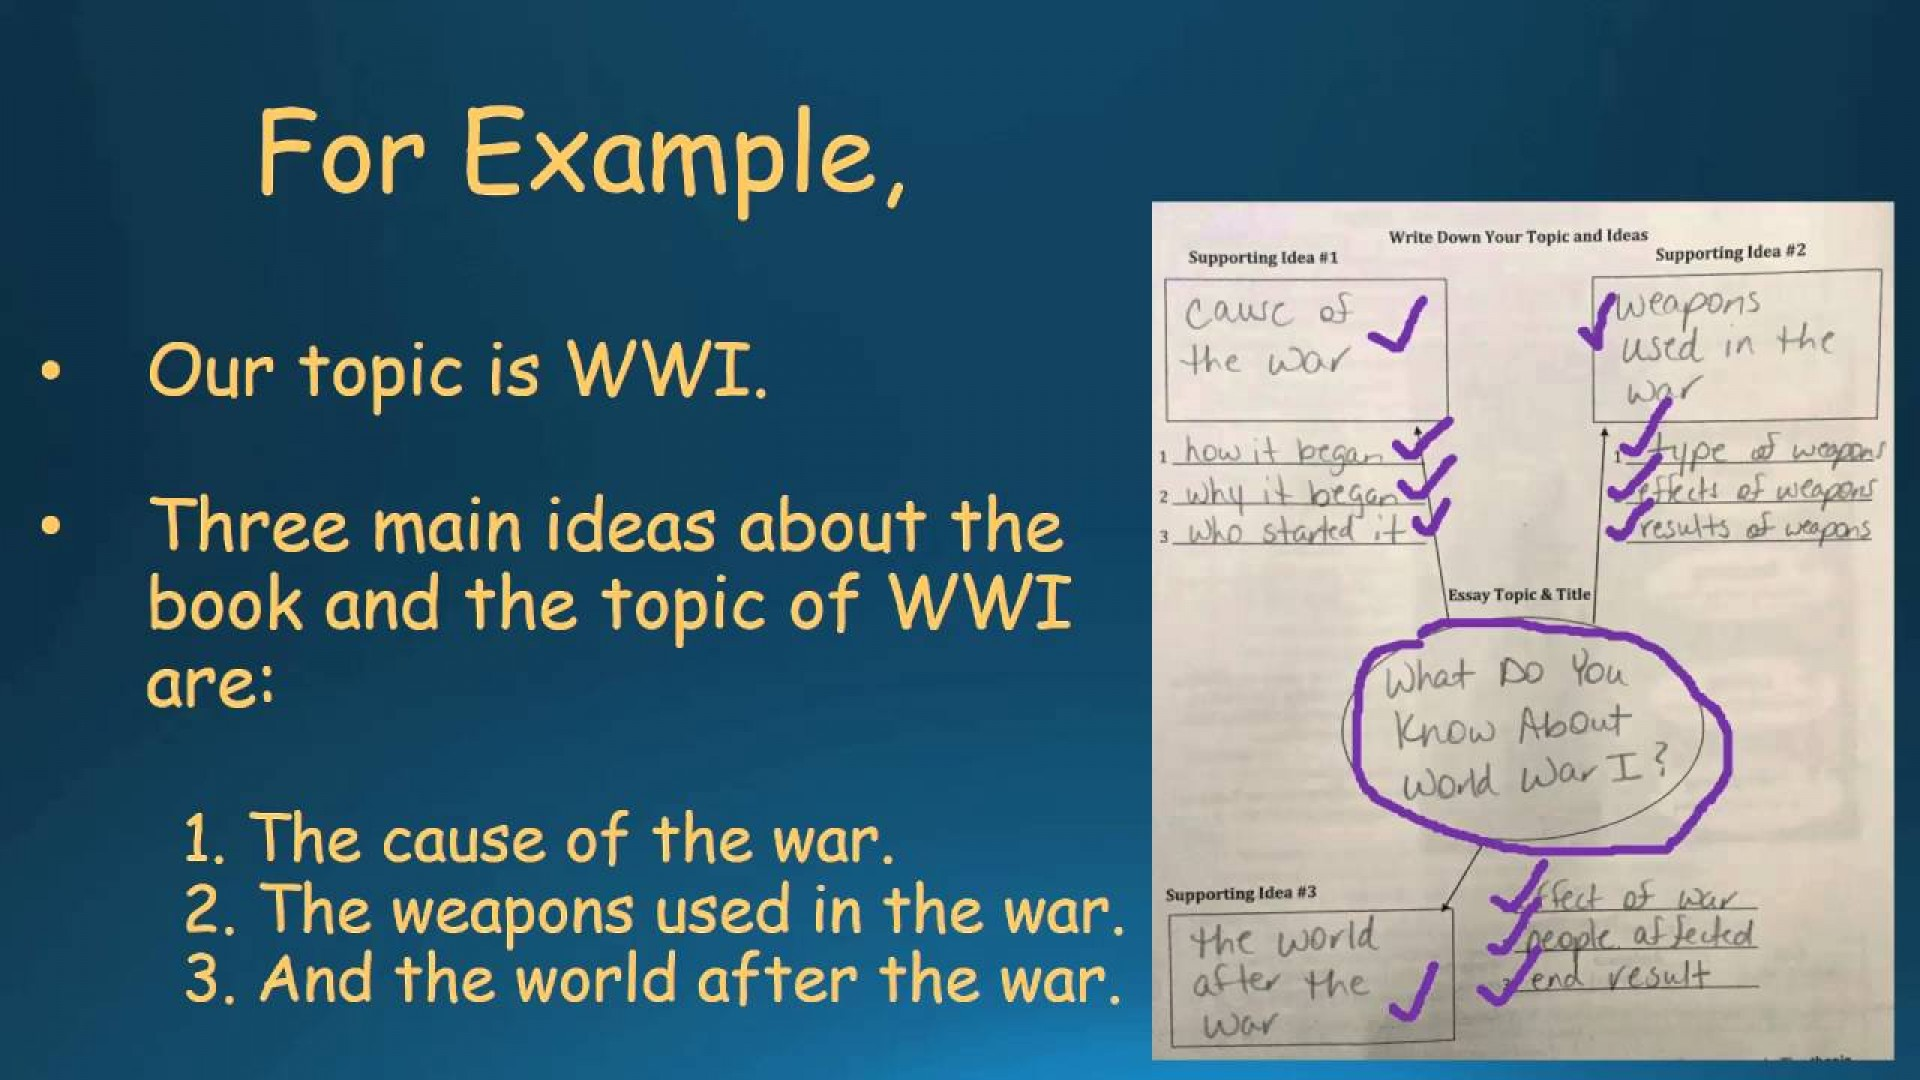 016 Writing An Informative Essay Example Sensational About The Immigrant Experience Ppt Introduction 1920